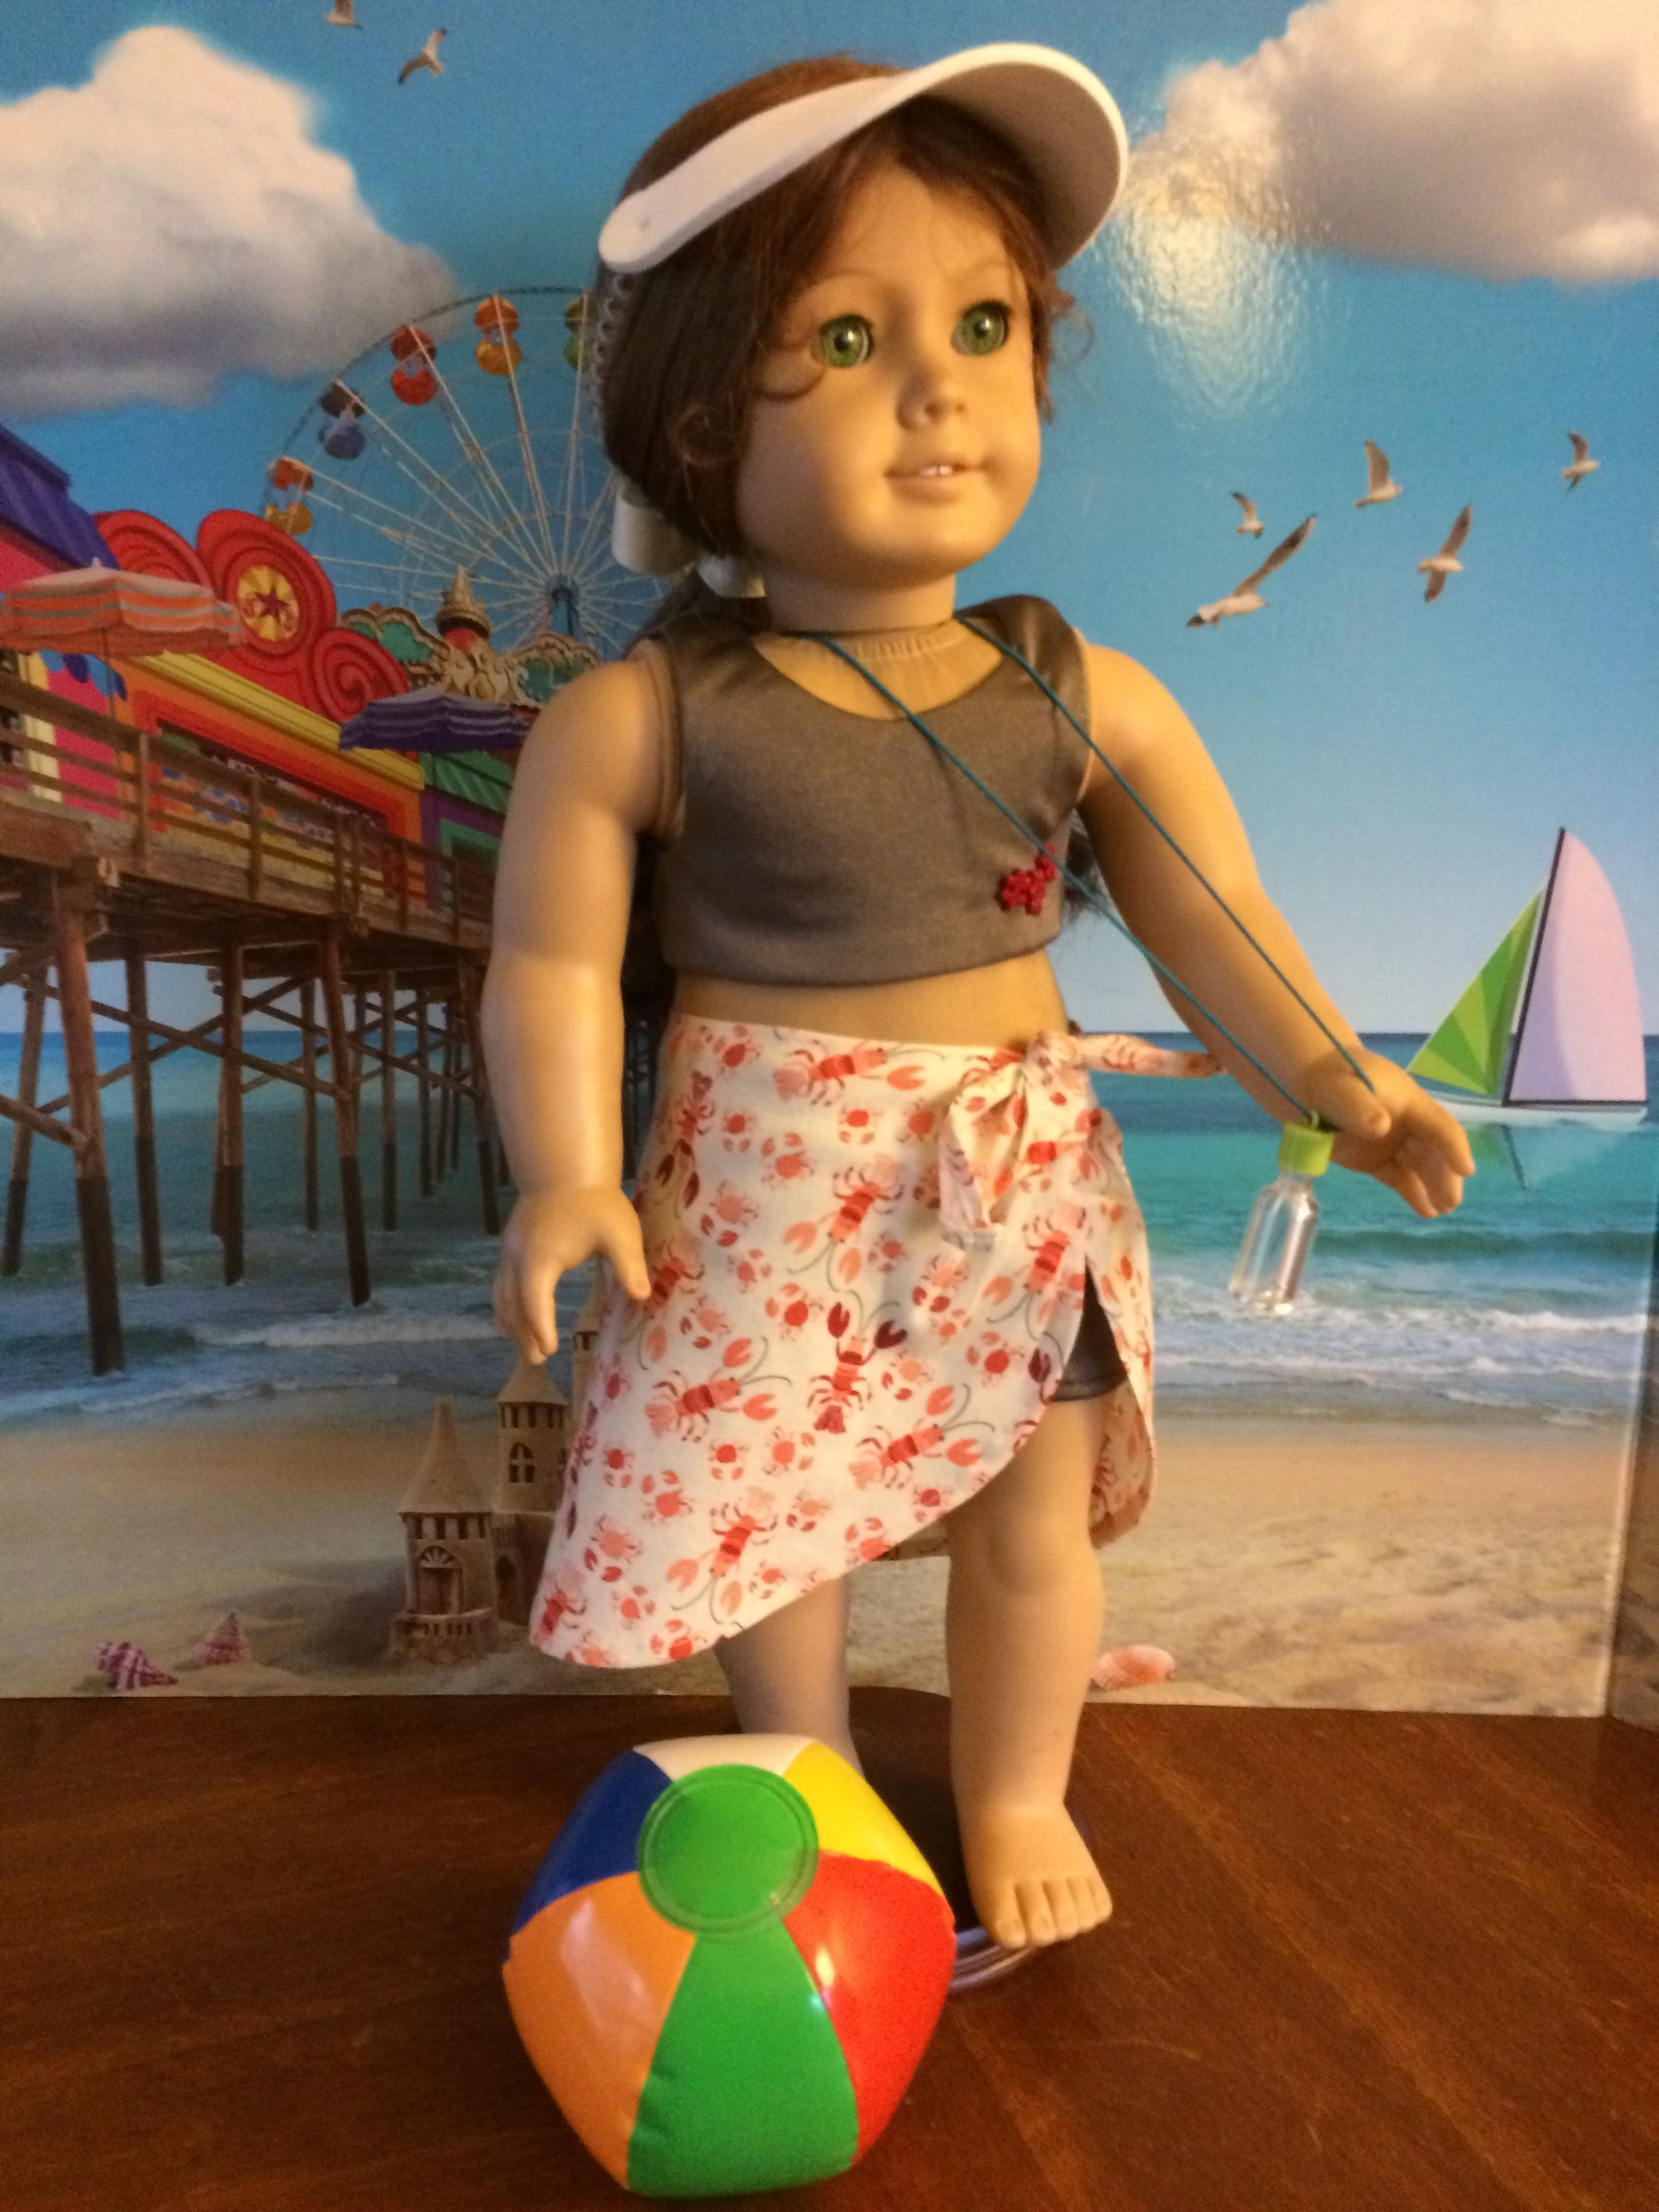 "8601cc6760 18""doll outfit includes two piece bathing suit, cotton sarong, visor,  message in a bottle necklace, beach ball. *doll not included."